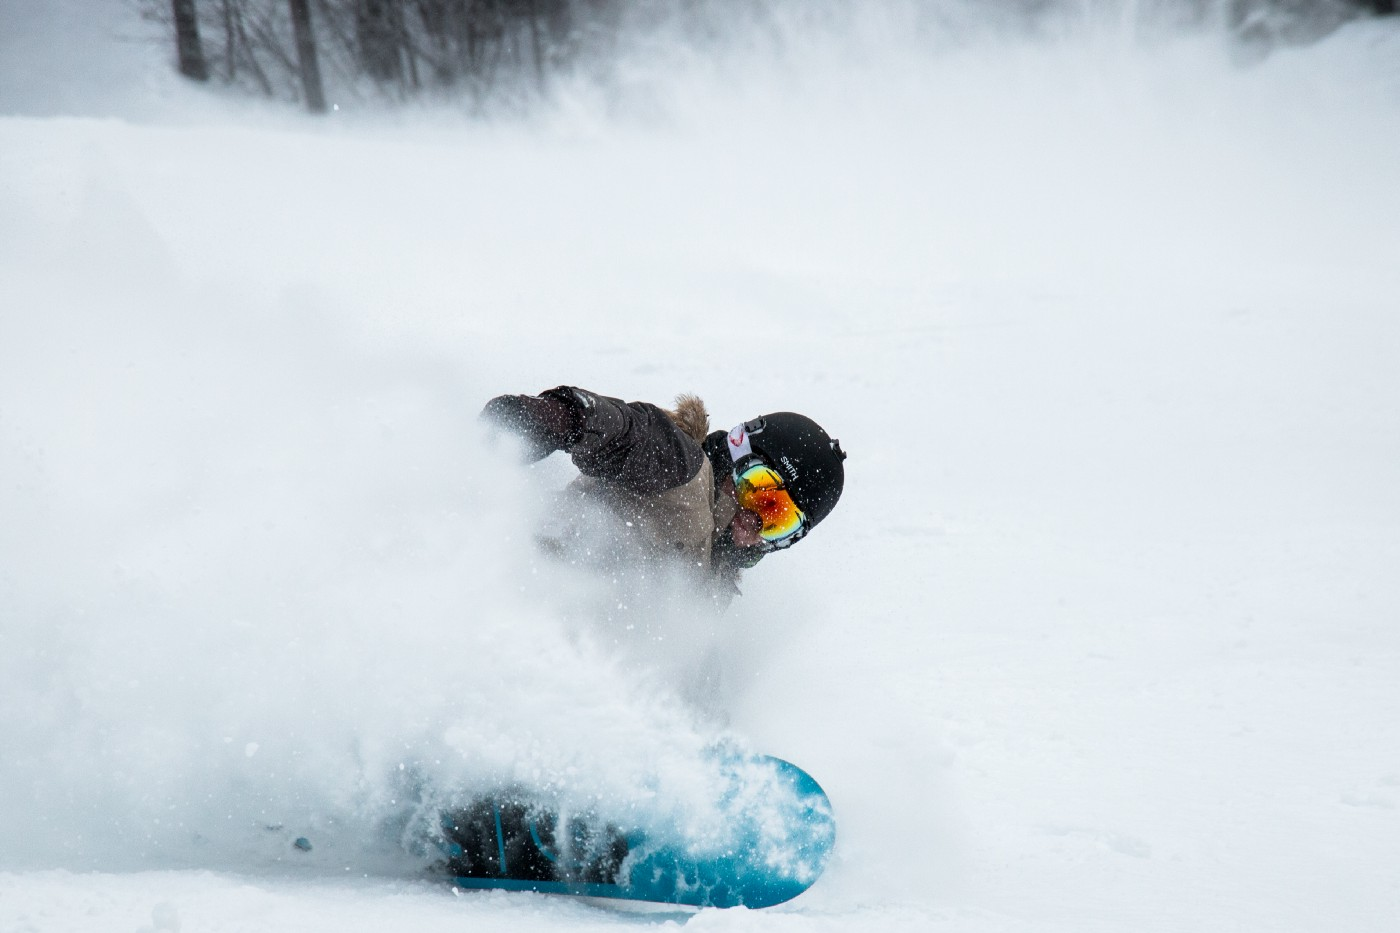 A snowboarder making a sharp cut on the mountain while kicking up snow.